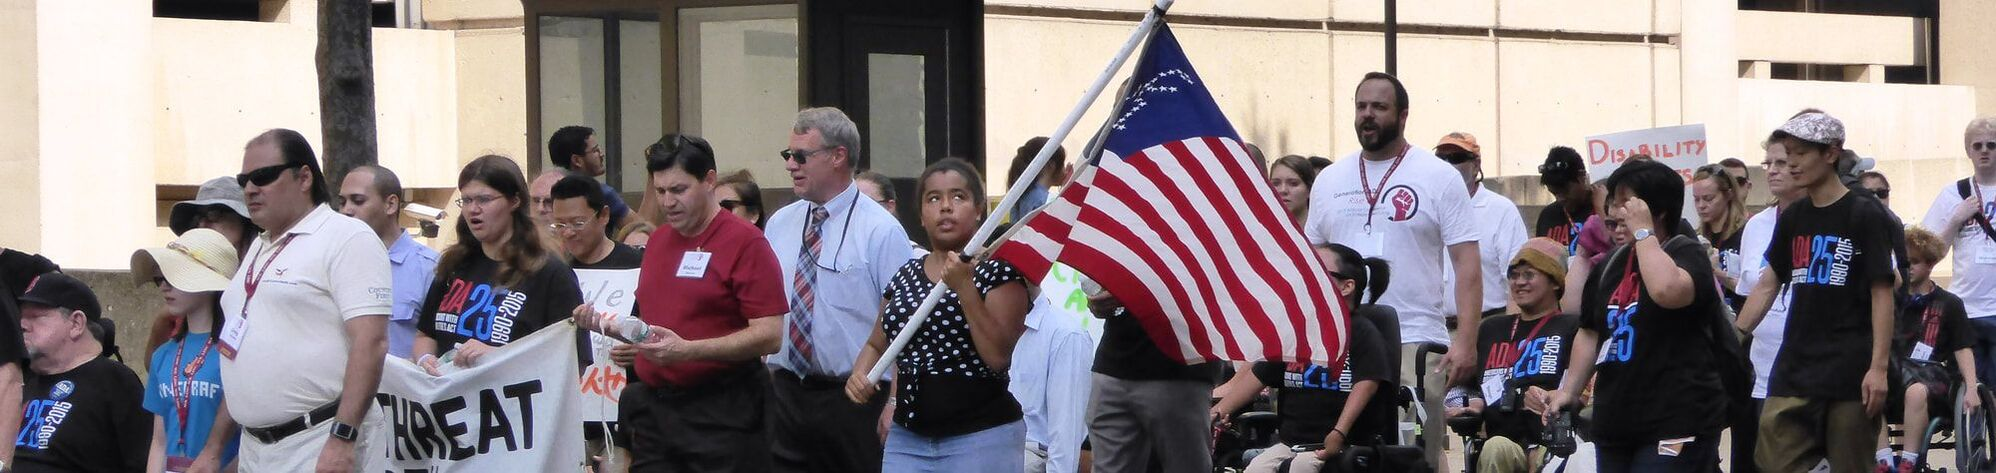 Gril with flag in Washington DC during ADA celebration